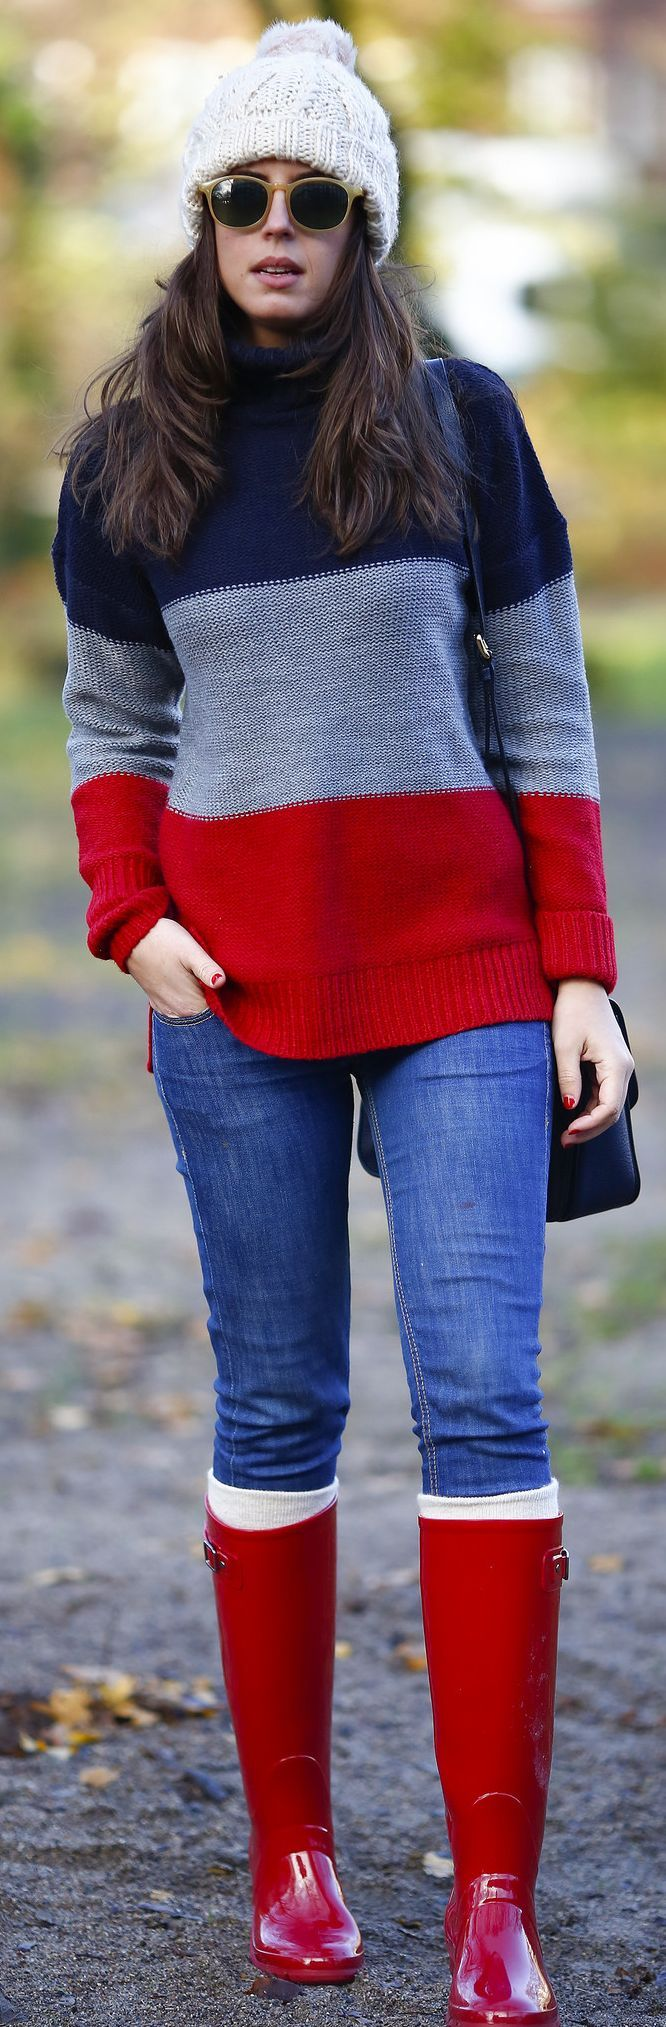 Red Hunter Boots and sweater